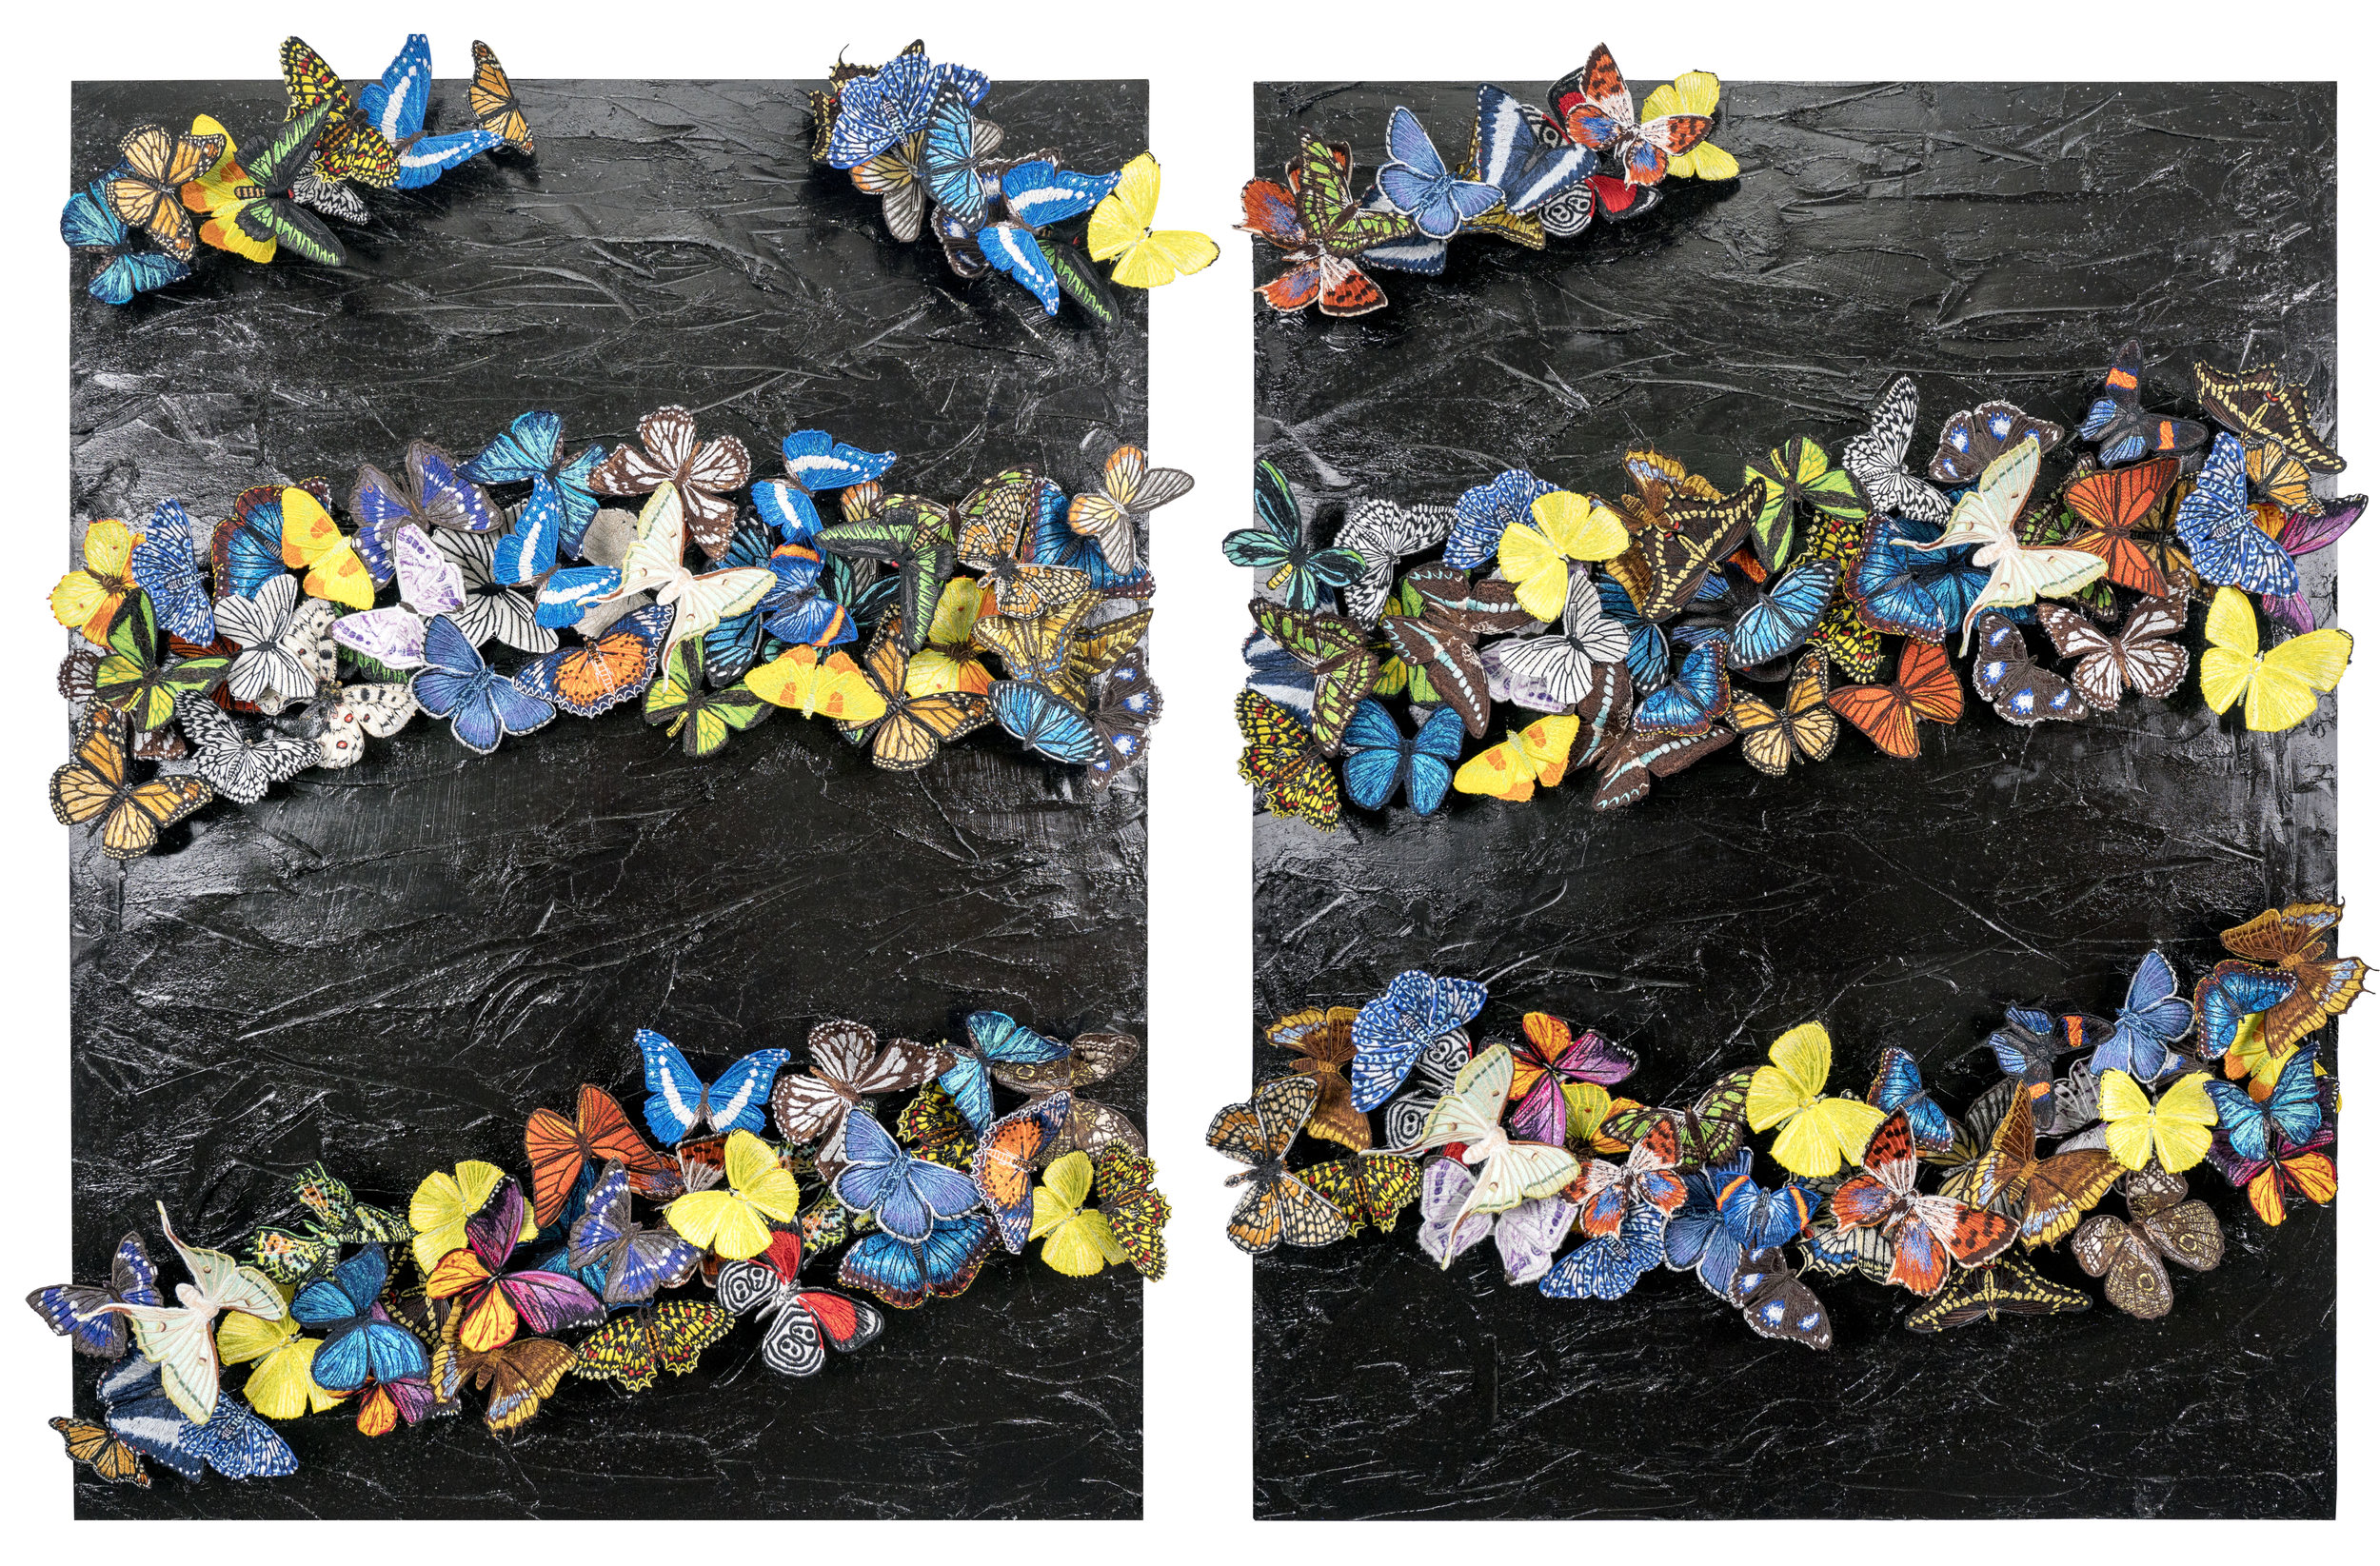 SWS0651_You'll Blow Us All Away, Someday, Someday Composite_Diptych.jpg